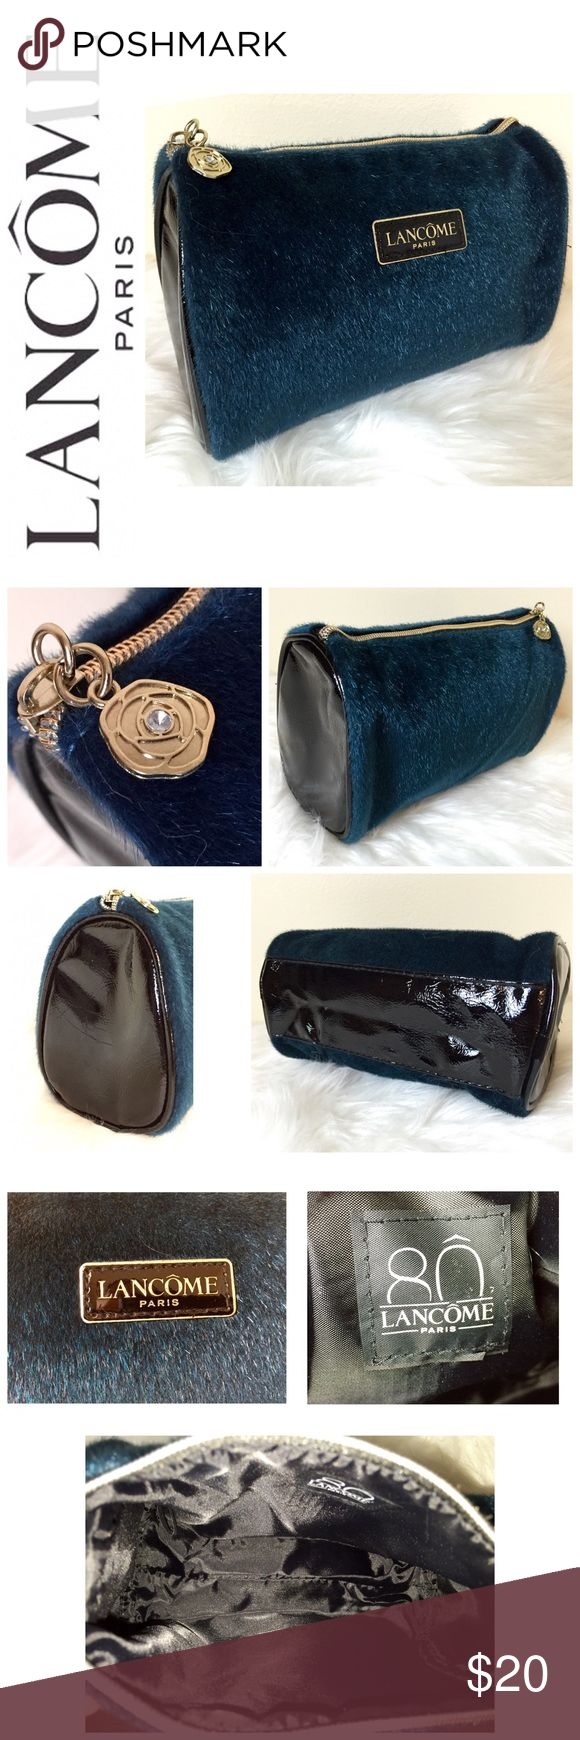 "NWOT Lancôme Paris Designer Cosmetic Bag Lancôme Paris Designer Cosmetic Bag, Faux Fur Style in Dark Teal with Gold Hardware, As well as Black Vinyl Material at both ends and Bottom, Zip Top Closure, Approx. Size is 7""x 4 1/2"" x 3"", NWOT Lancome Bags Cosmetic Bags & Cases"